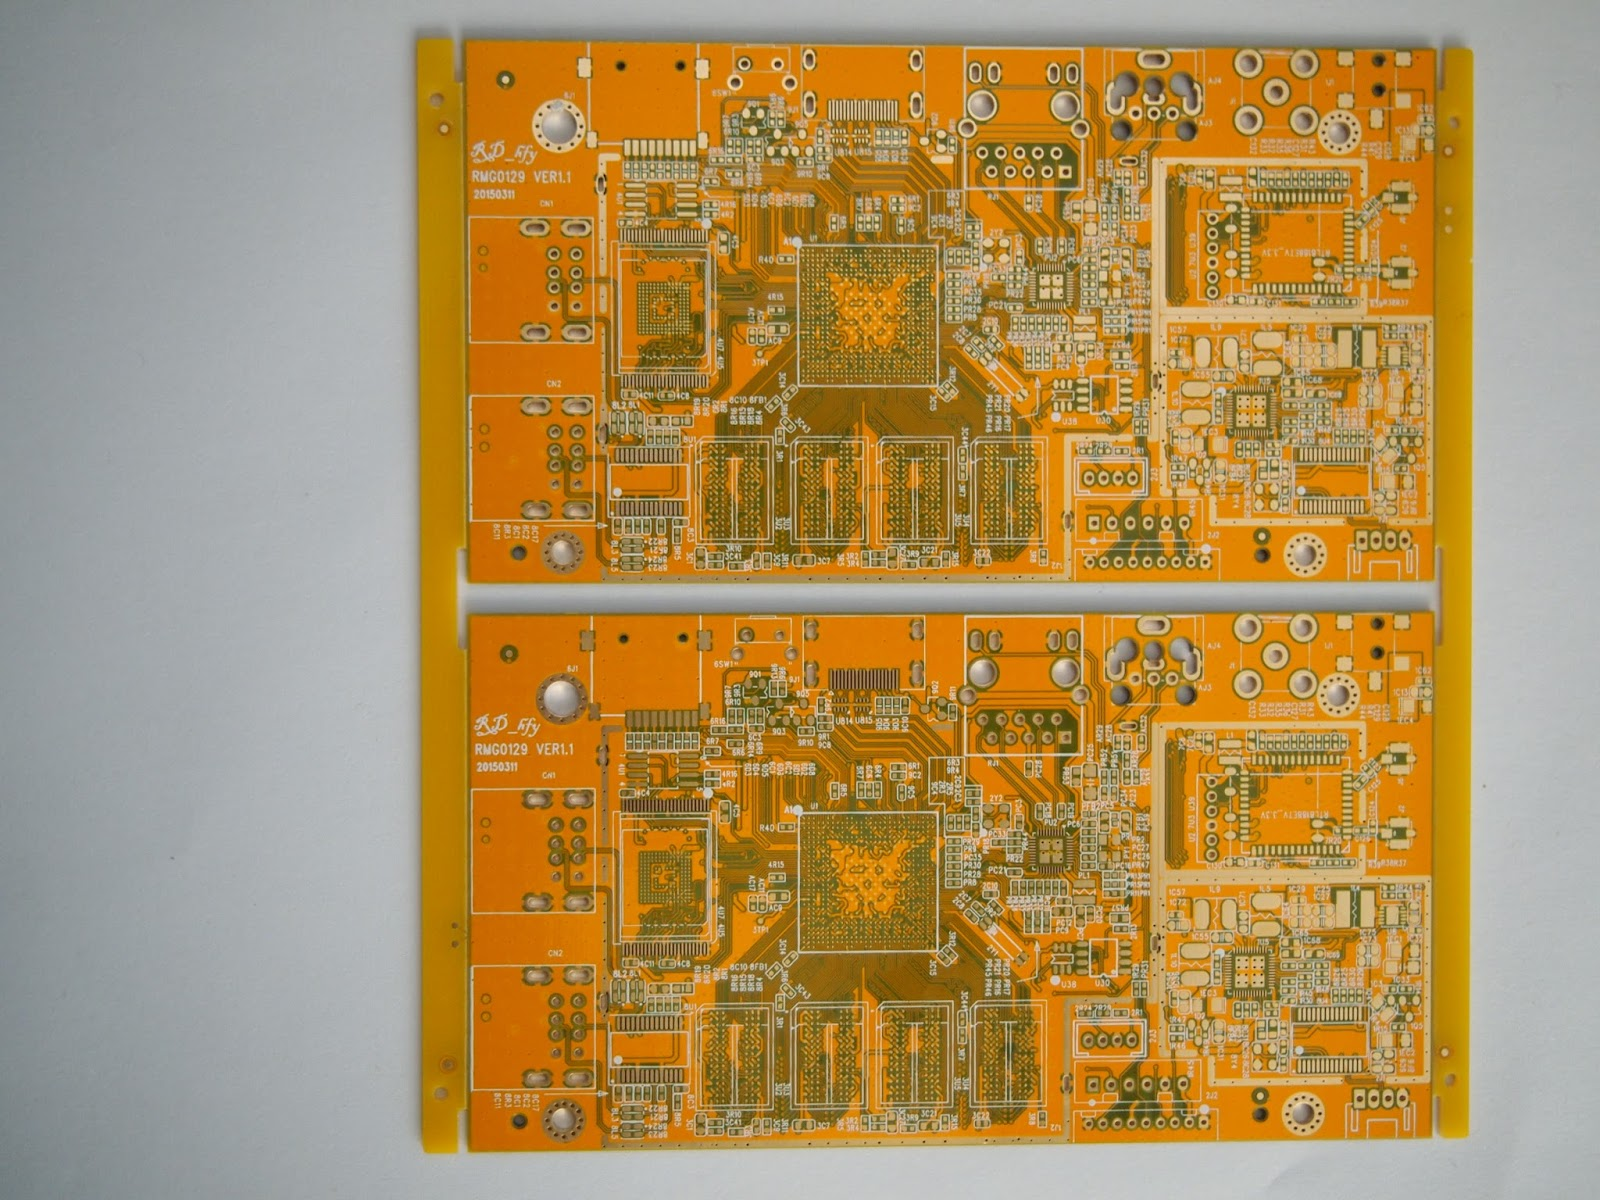 Dtpcb Hk Pcb Showcase 6 Layer Printed Circuit Boards Manufacturer In Multilayer China Ul Rohs Ourpcb Products Dtpcbcn Akenzhangdtpcbcn